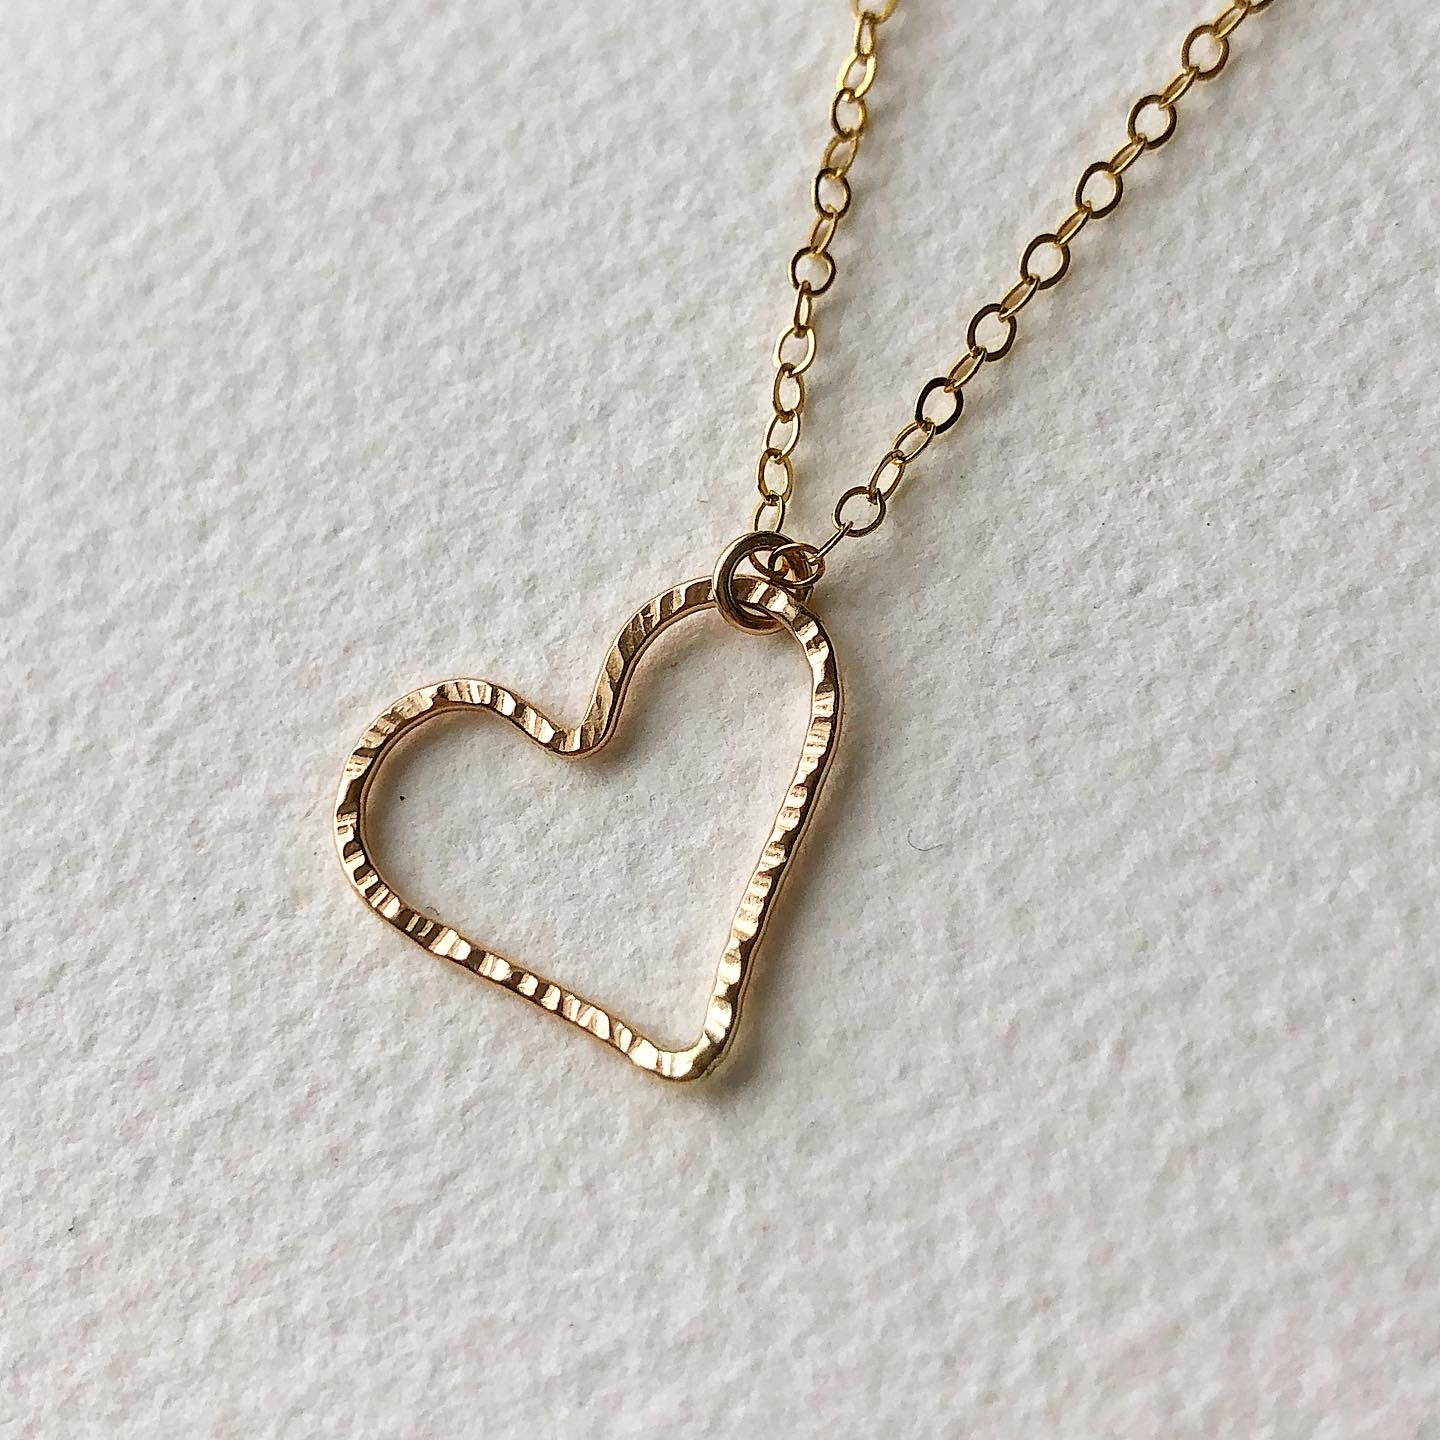 Open-Hearted Pendant Necklace